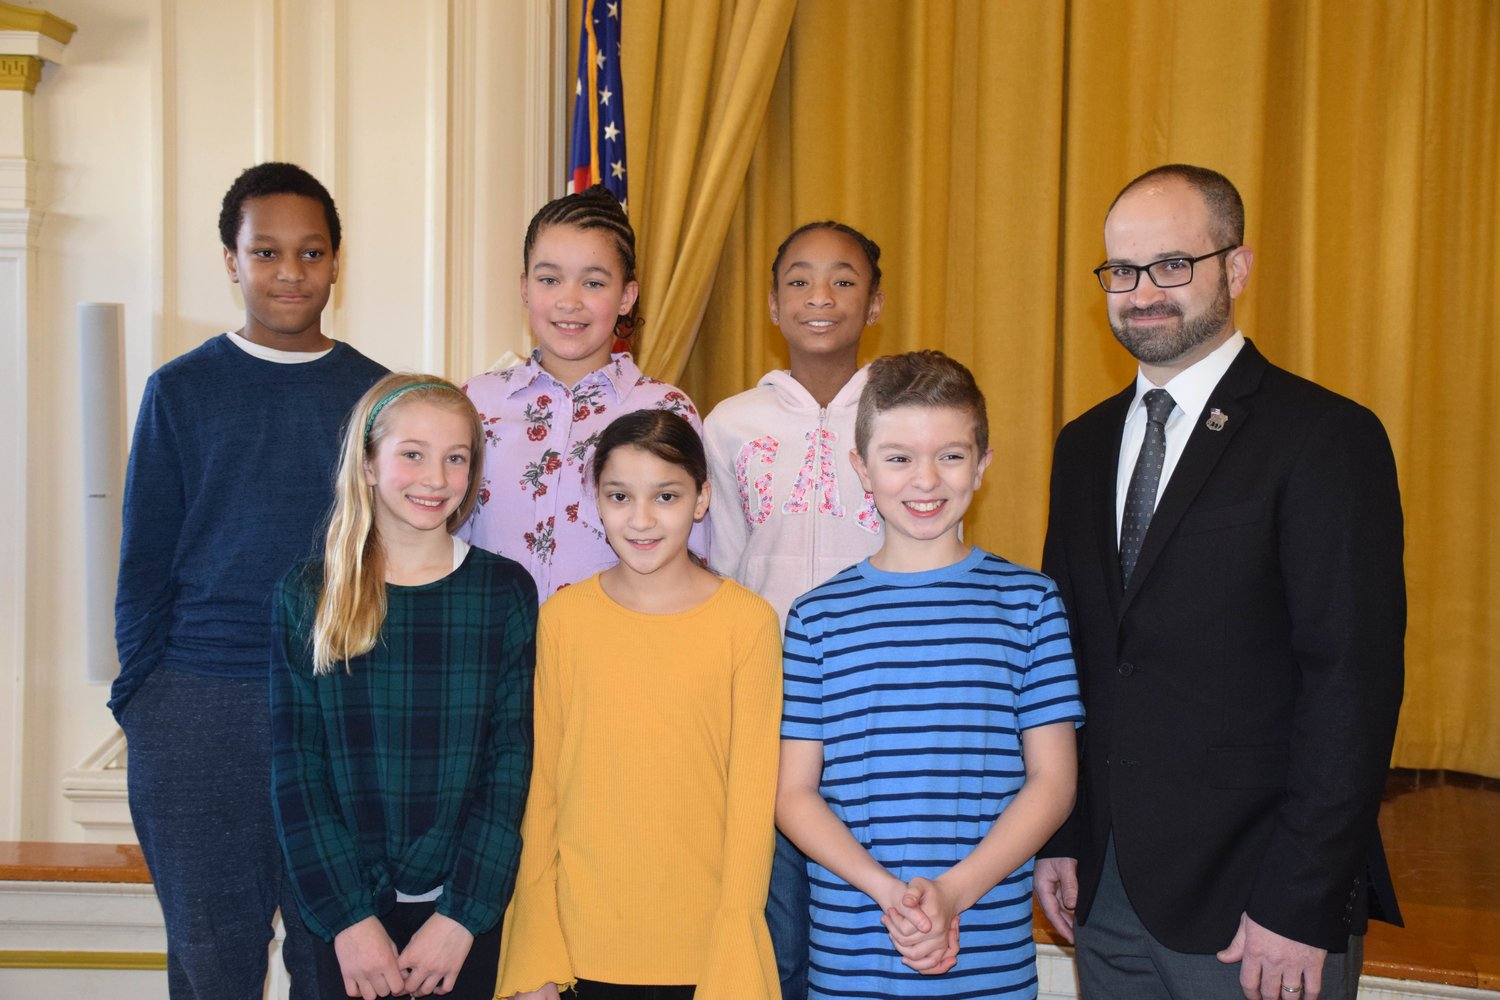 State Assemblyman Ed Ra discussed the basics of politics with students at George Washington Intermediate School on Feb. 25.